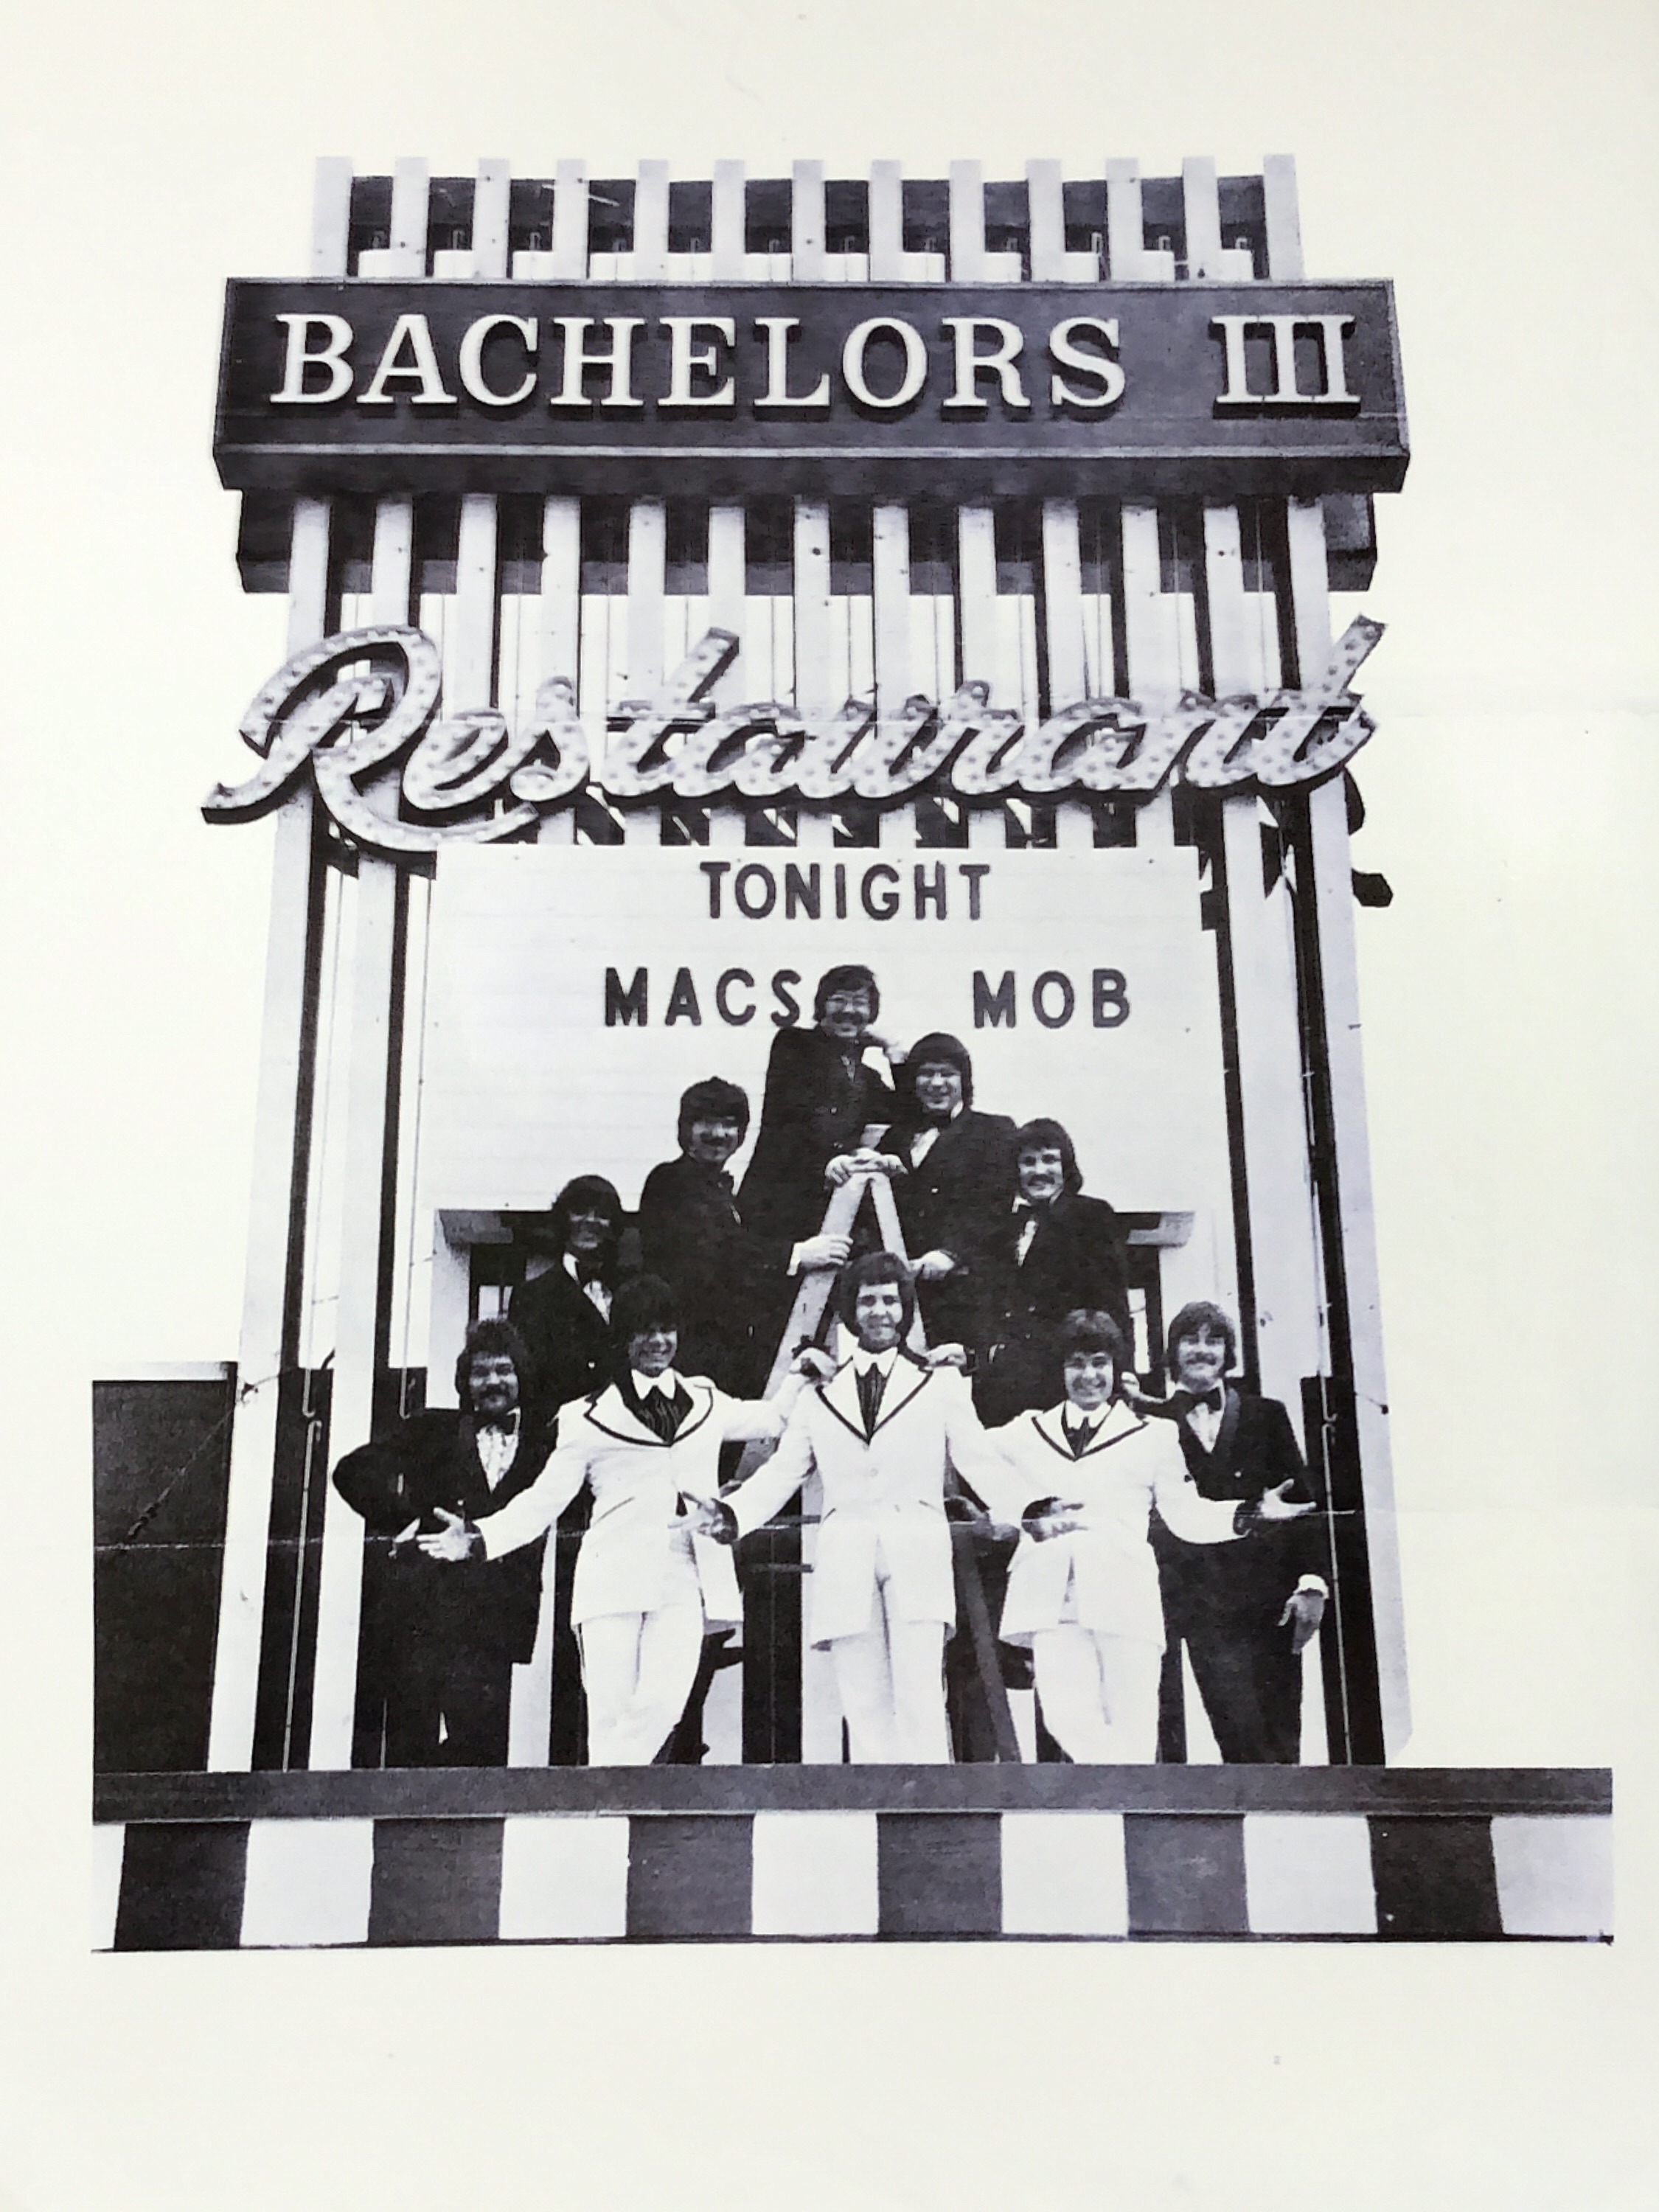 Mac's Mob at the Bachelors III